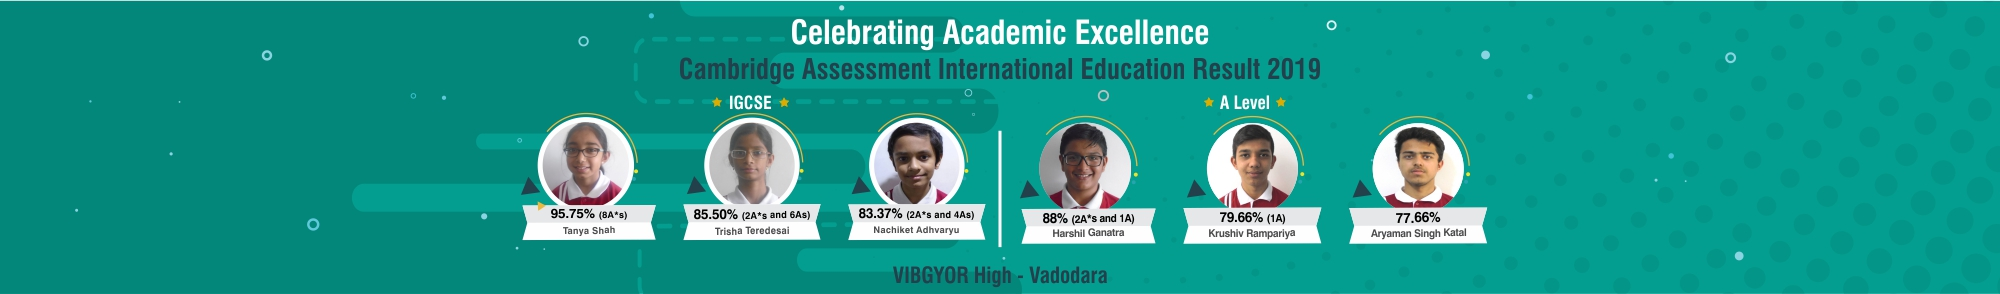 VIBGYOR High vadodara CBSE | CIE Schools